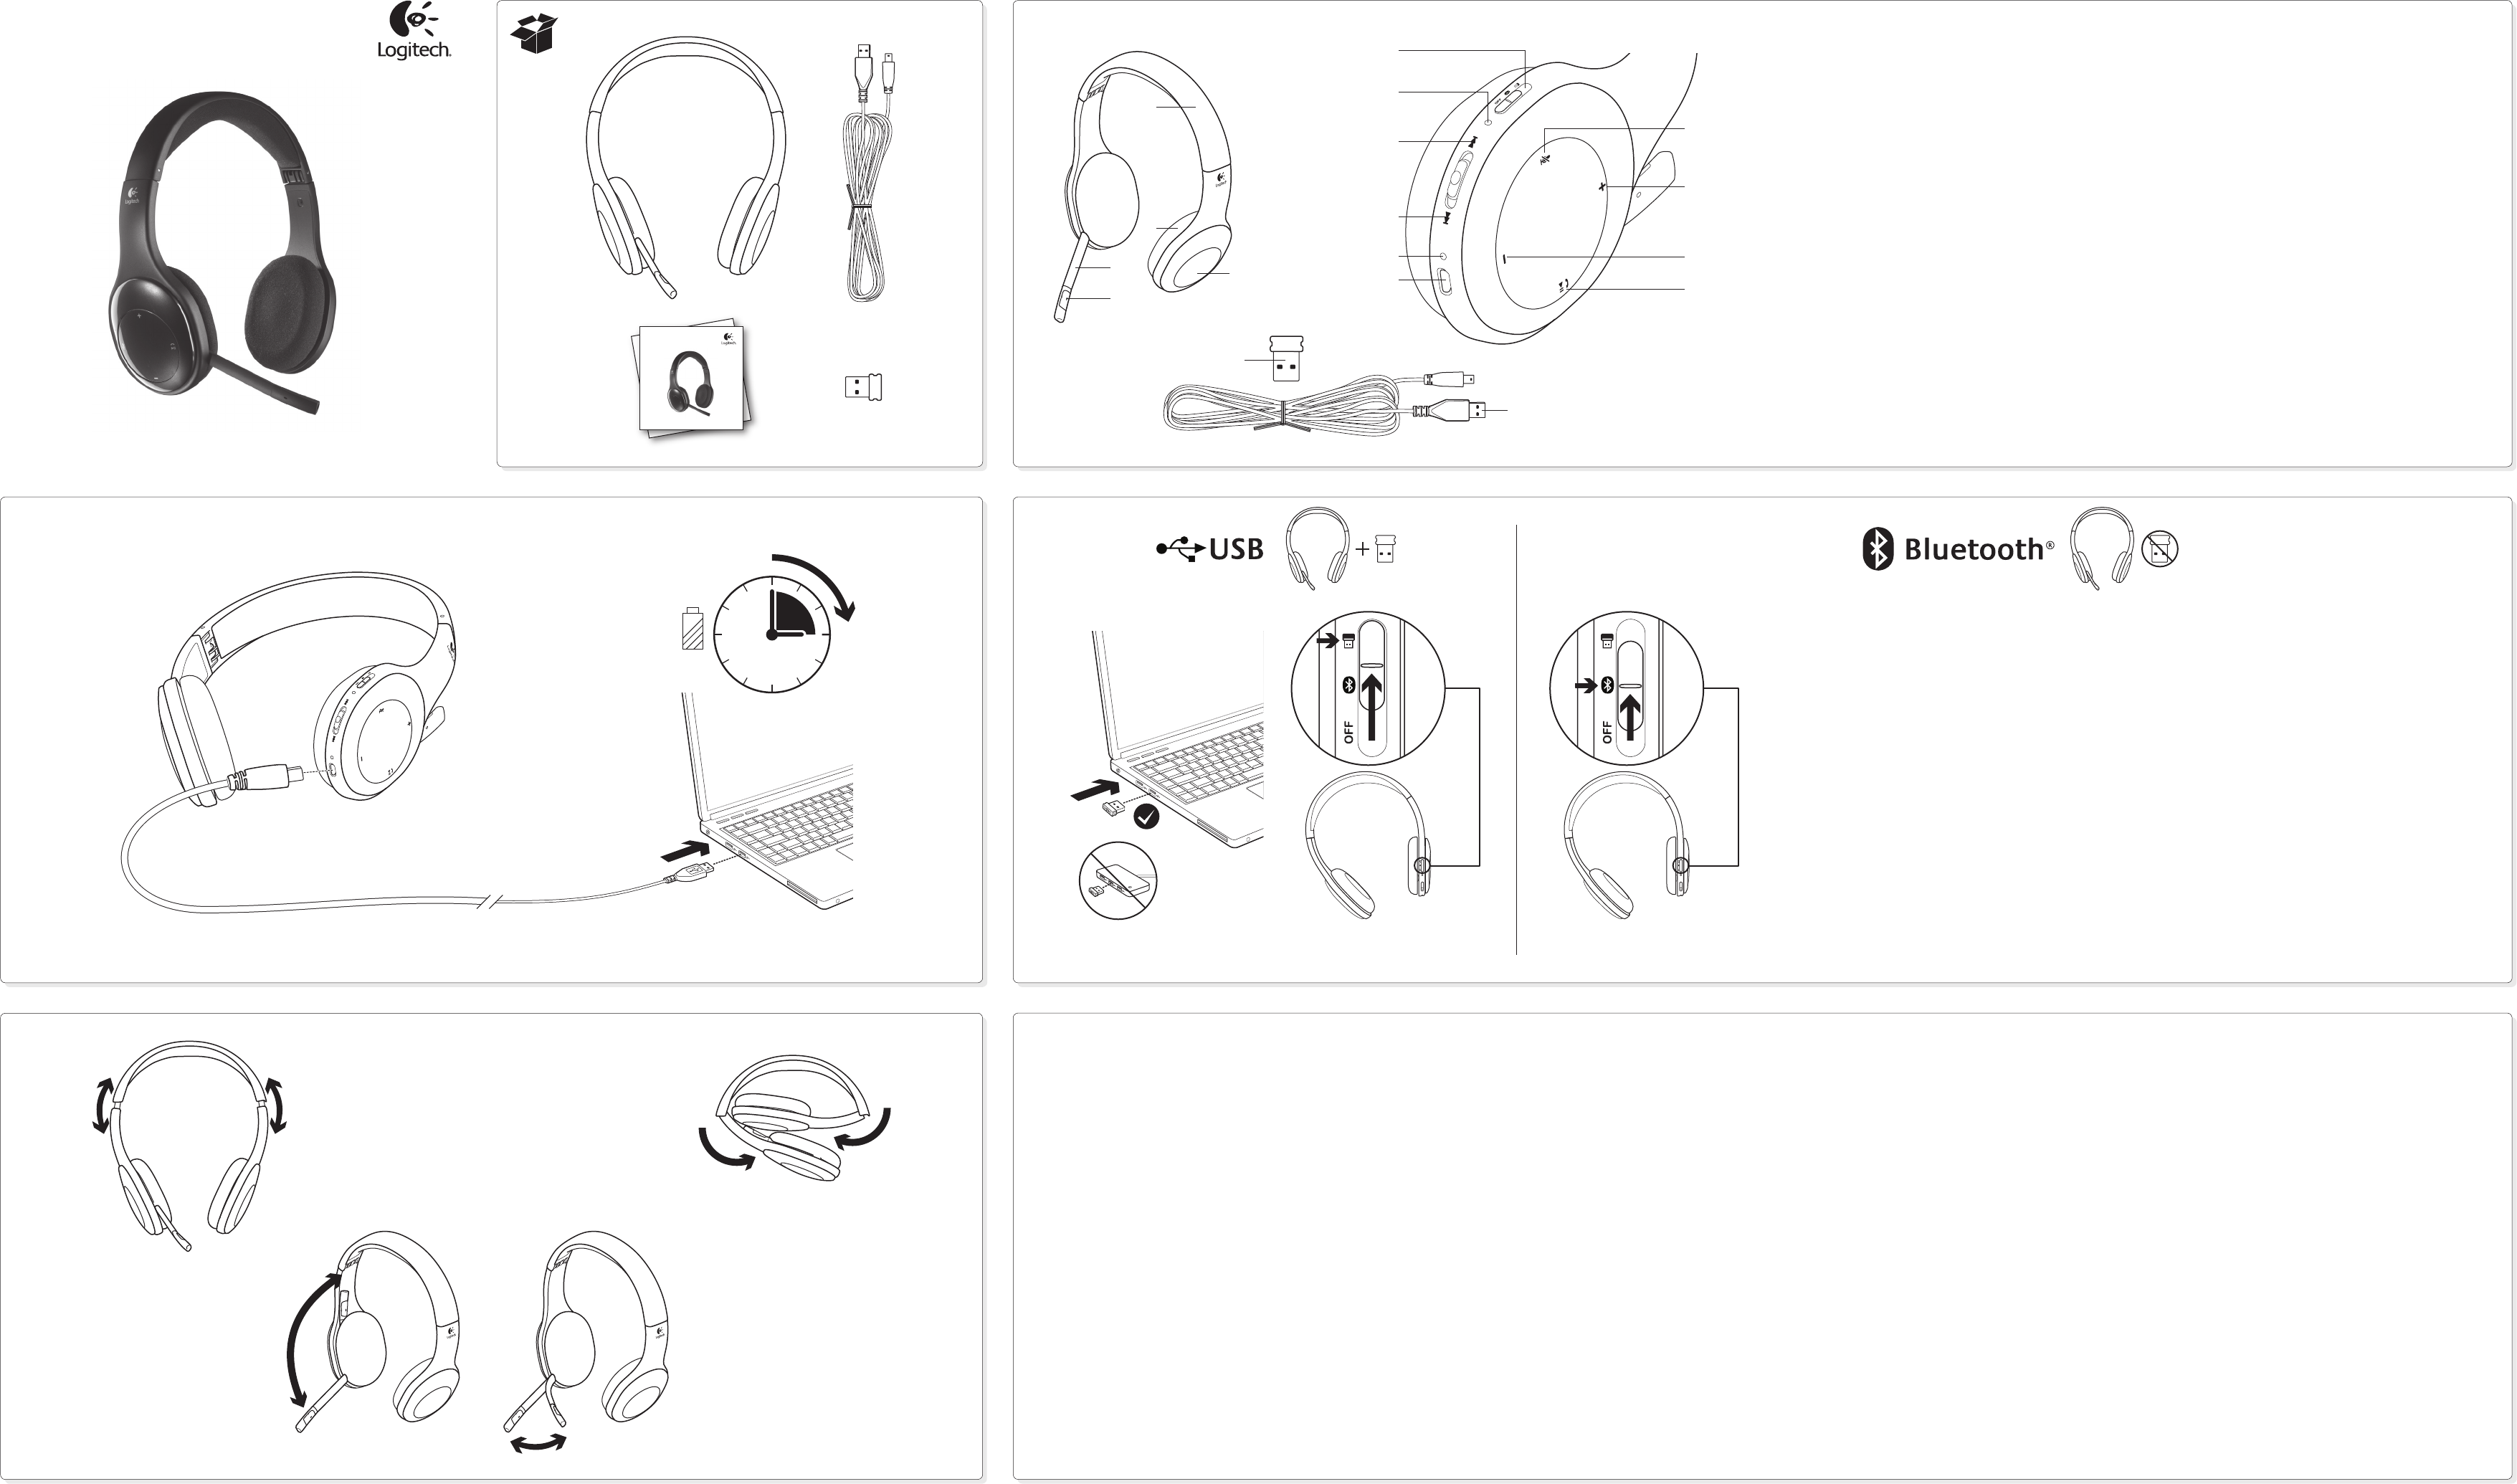 Nano receiver for wireless headset h800 - Logitech Wireless Headset H800 Headphones User Manual